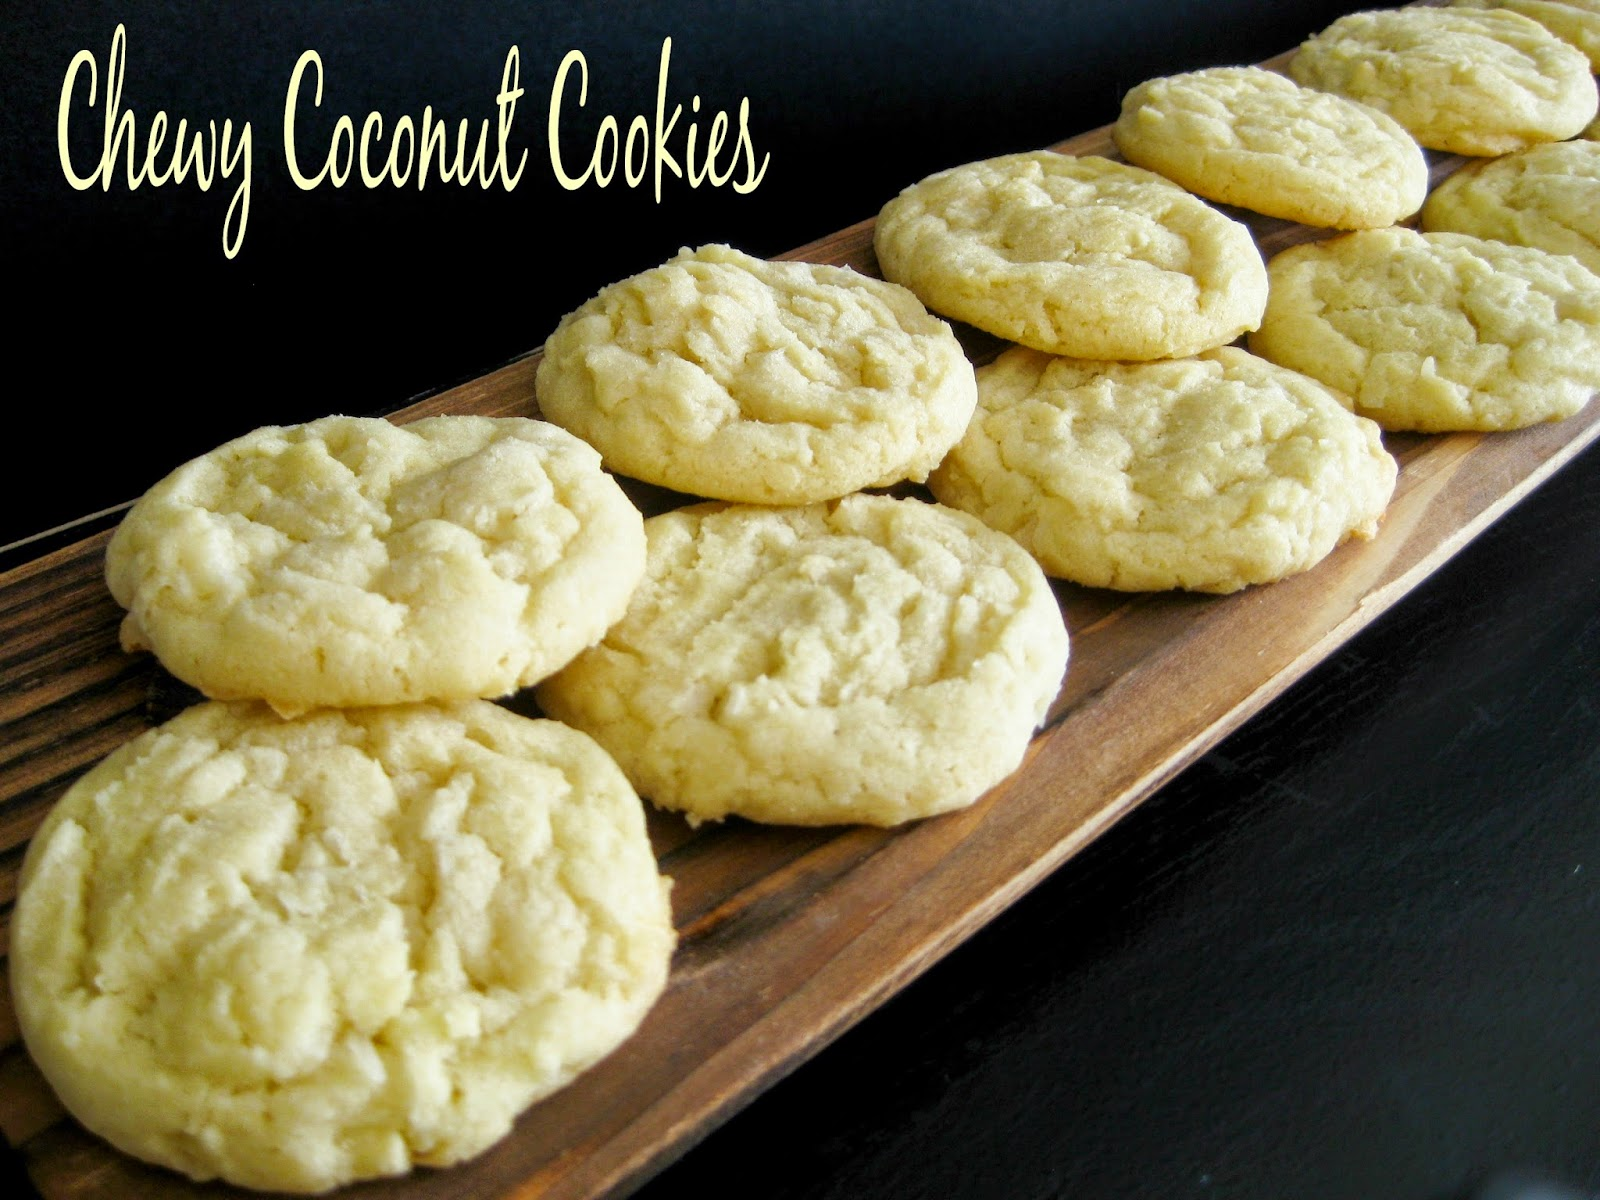 Chewy Coconut Cookies Recipe